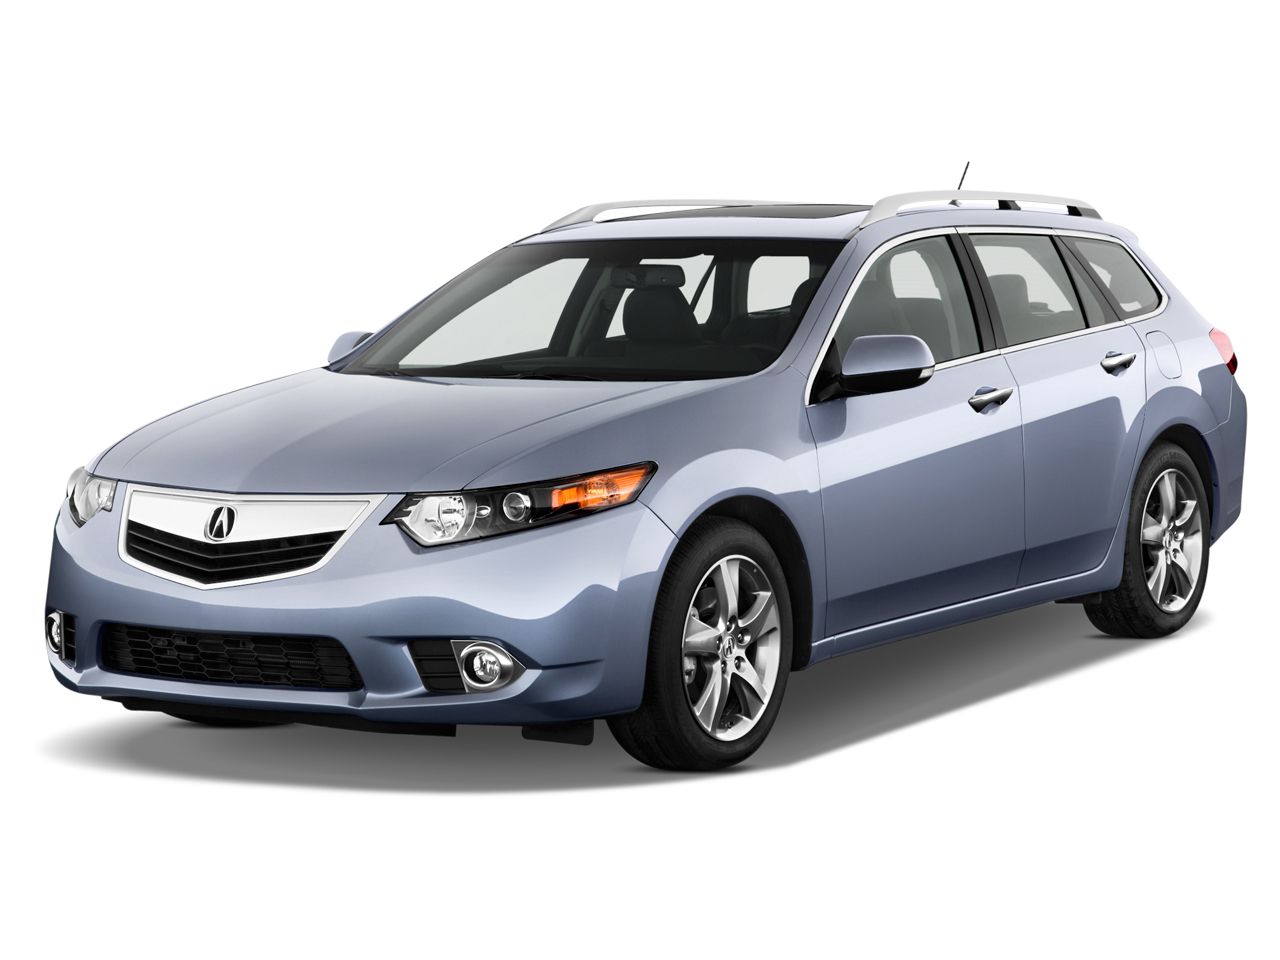 2012 acura tsx review ratings specs prices and photos the car connection. Black Bedroom Furniture Sets. Home Design Ideas